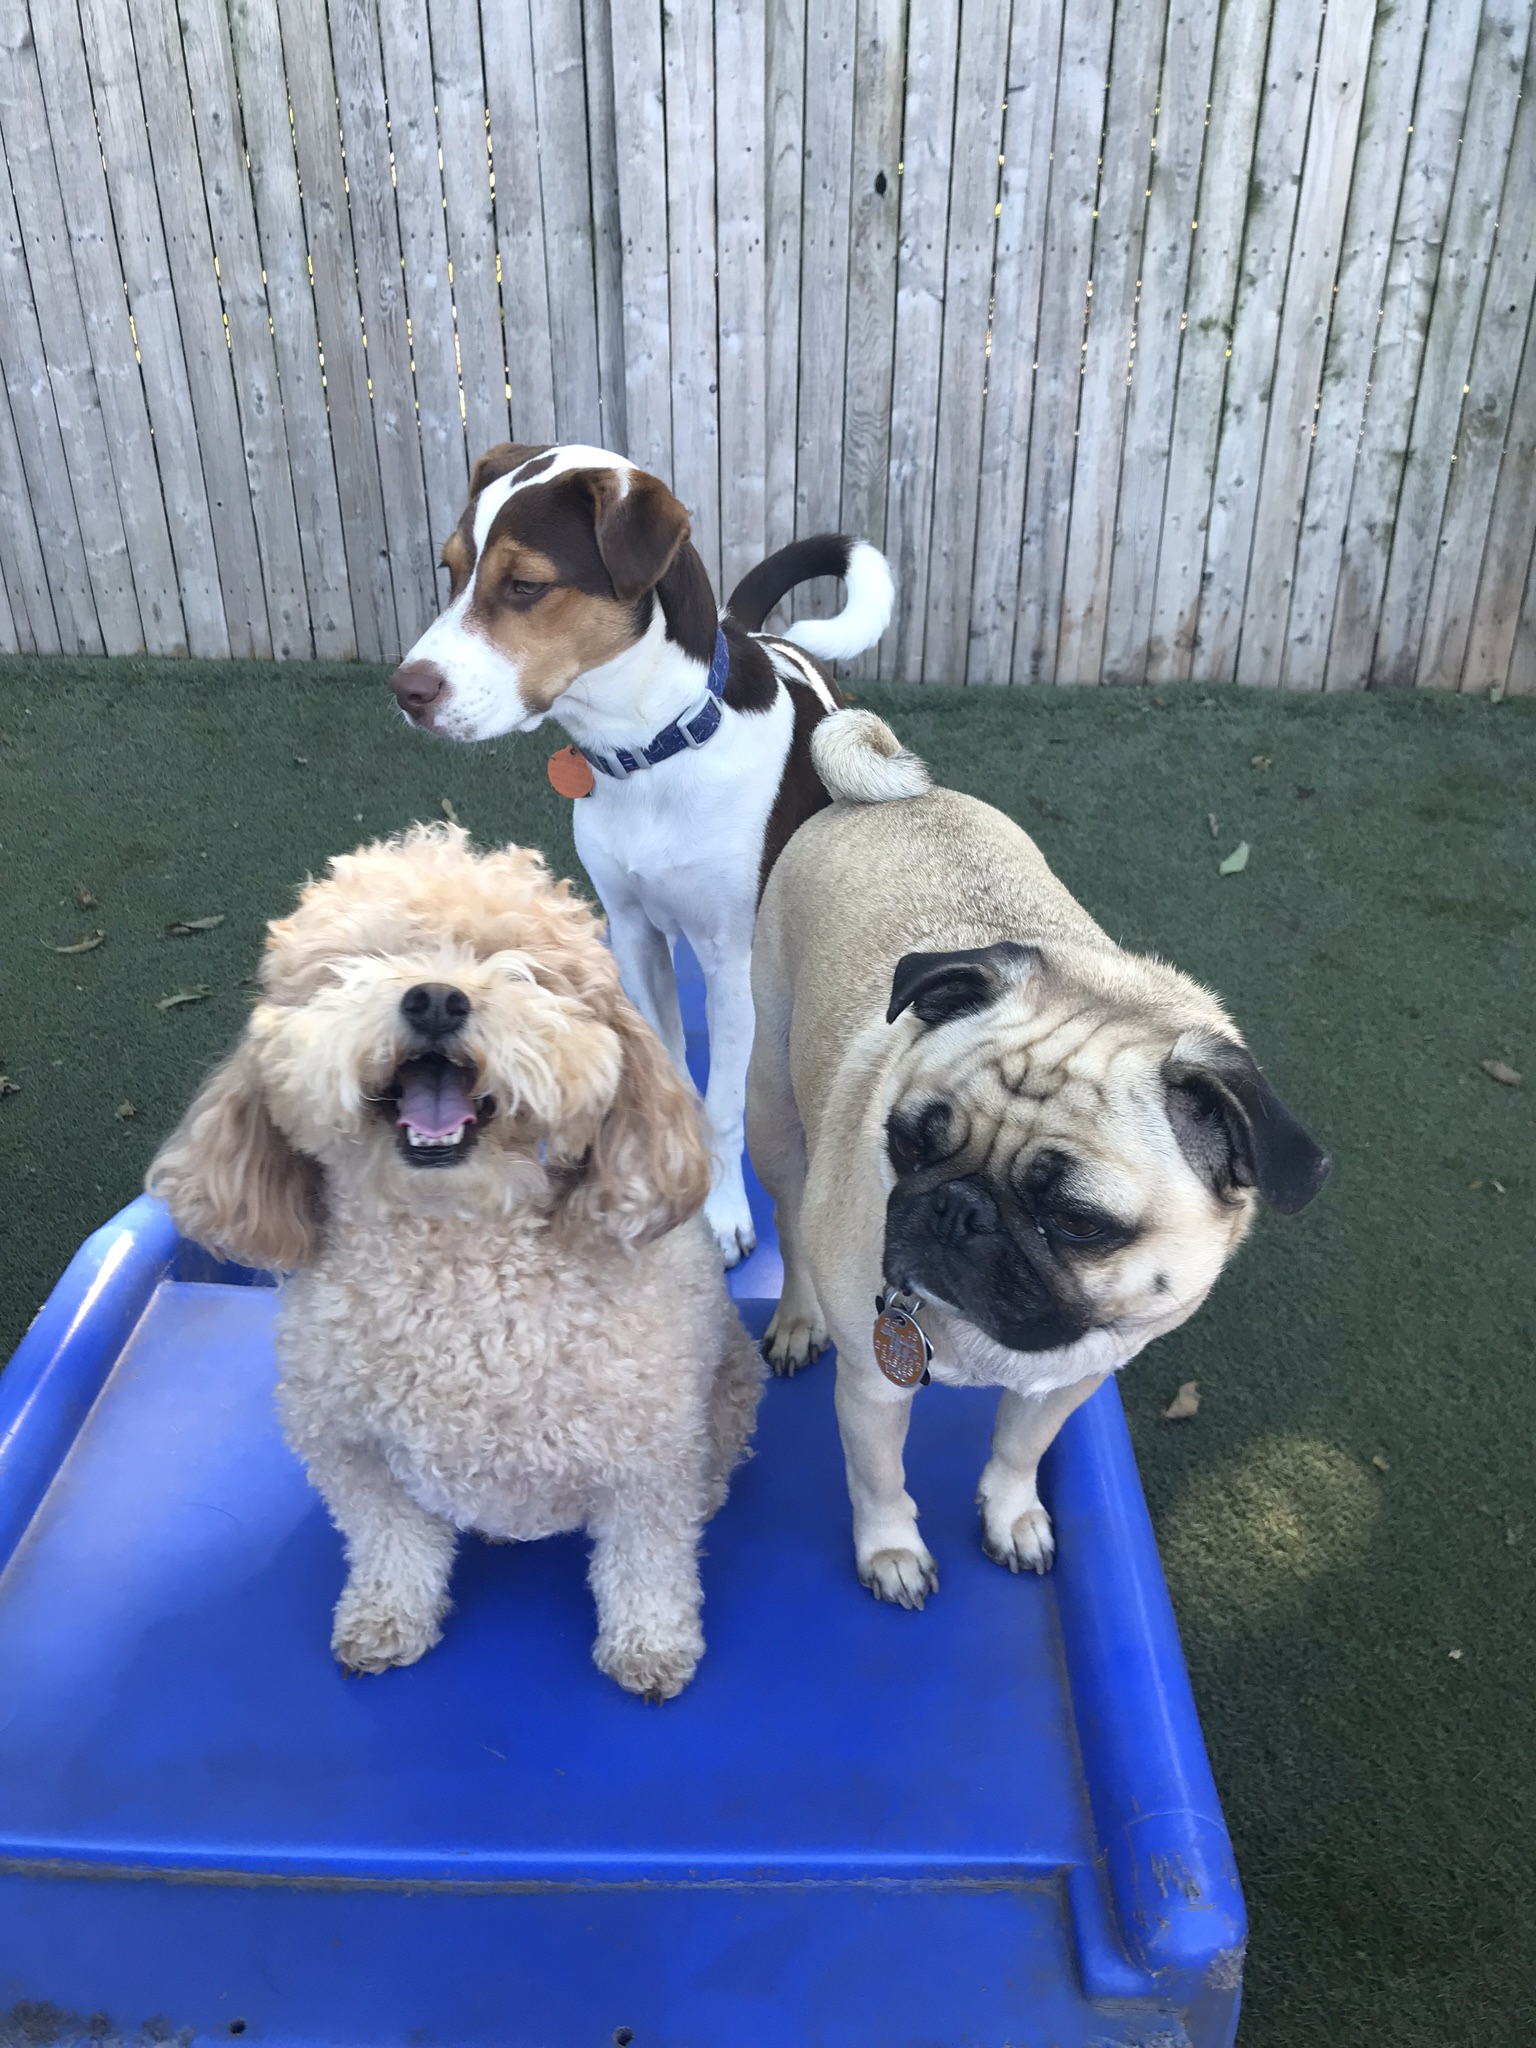 Three dogs during playtime at outdoor play facility